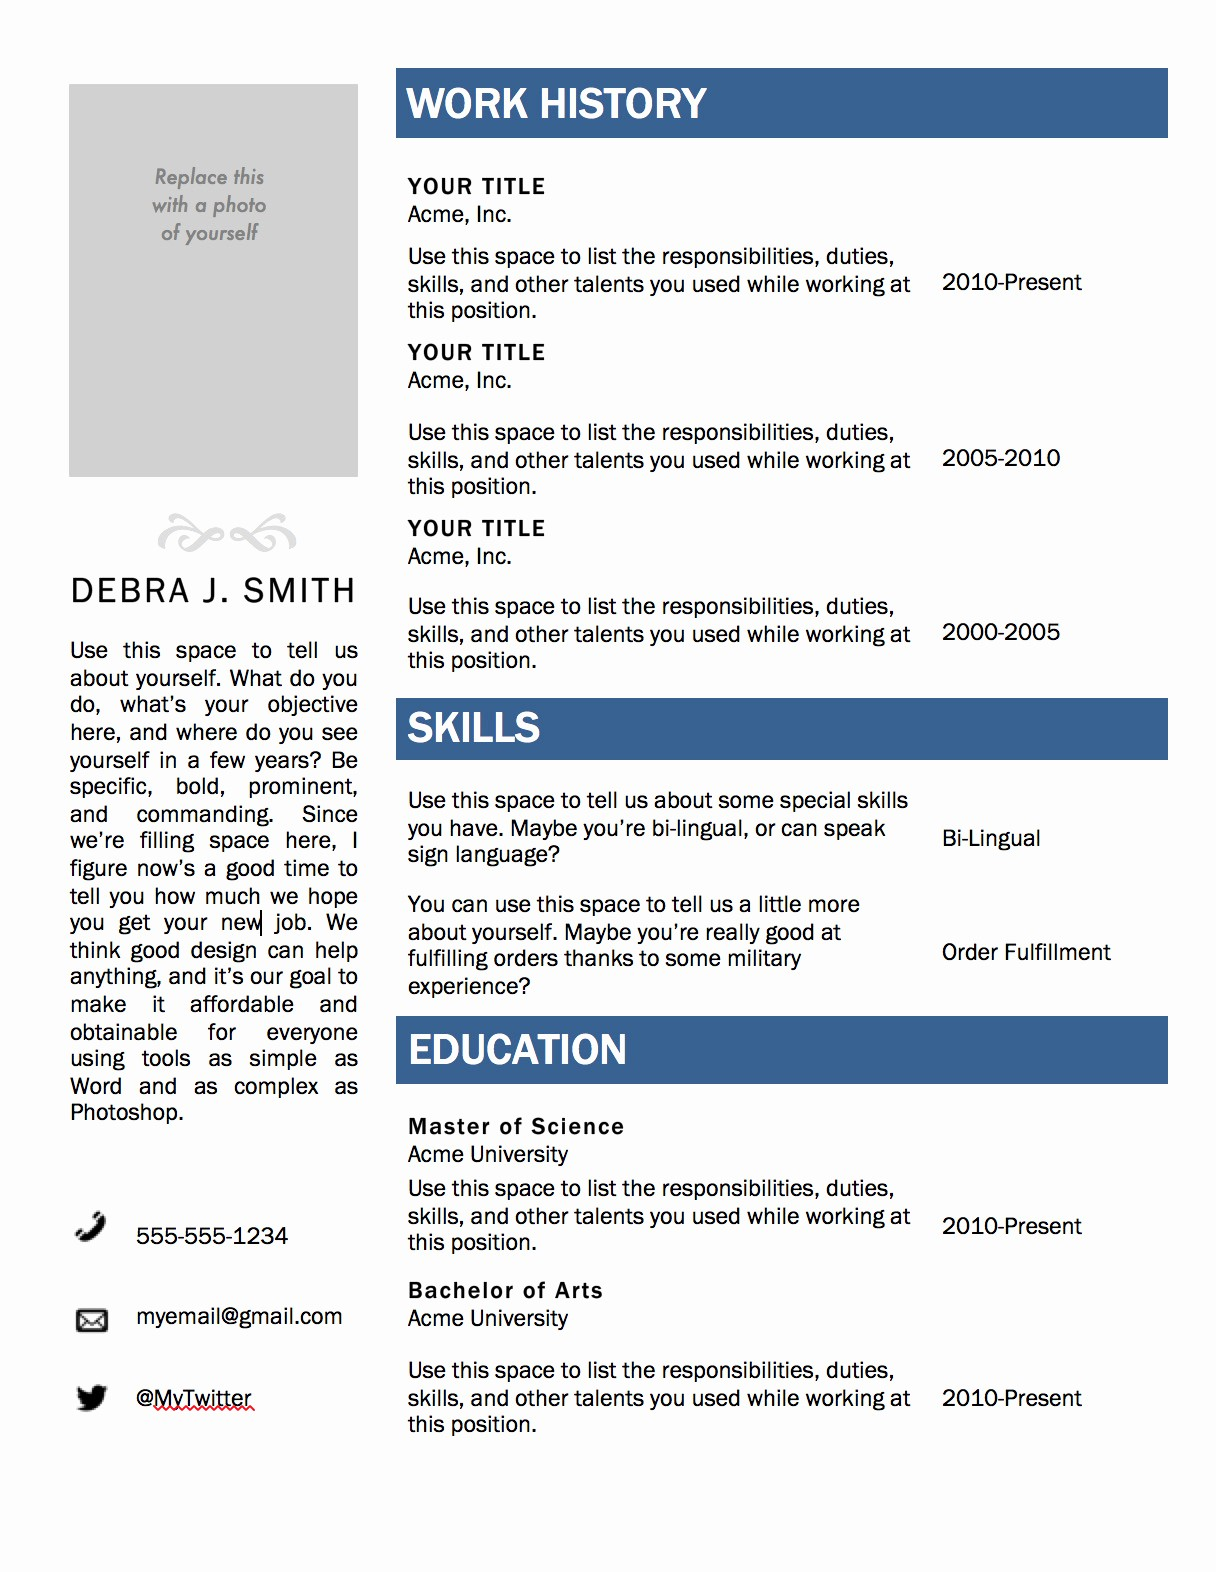 Microsoft Word Template for Resume Inspirational Free Microsoft Word Resume Template — Superpixel